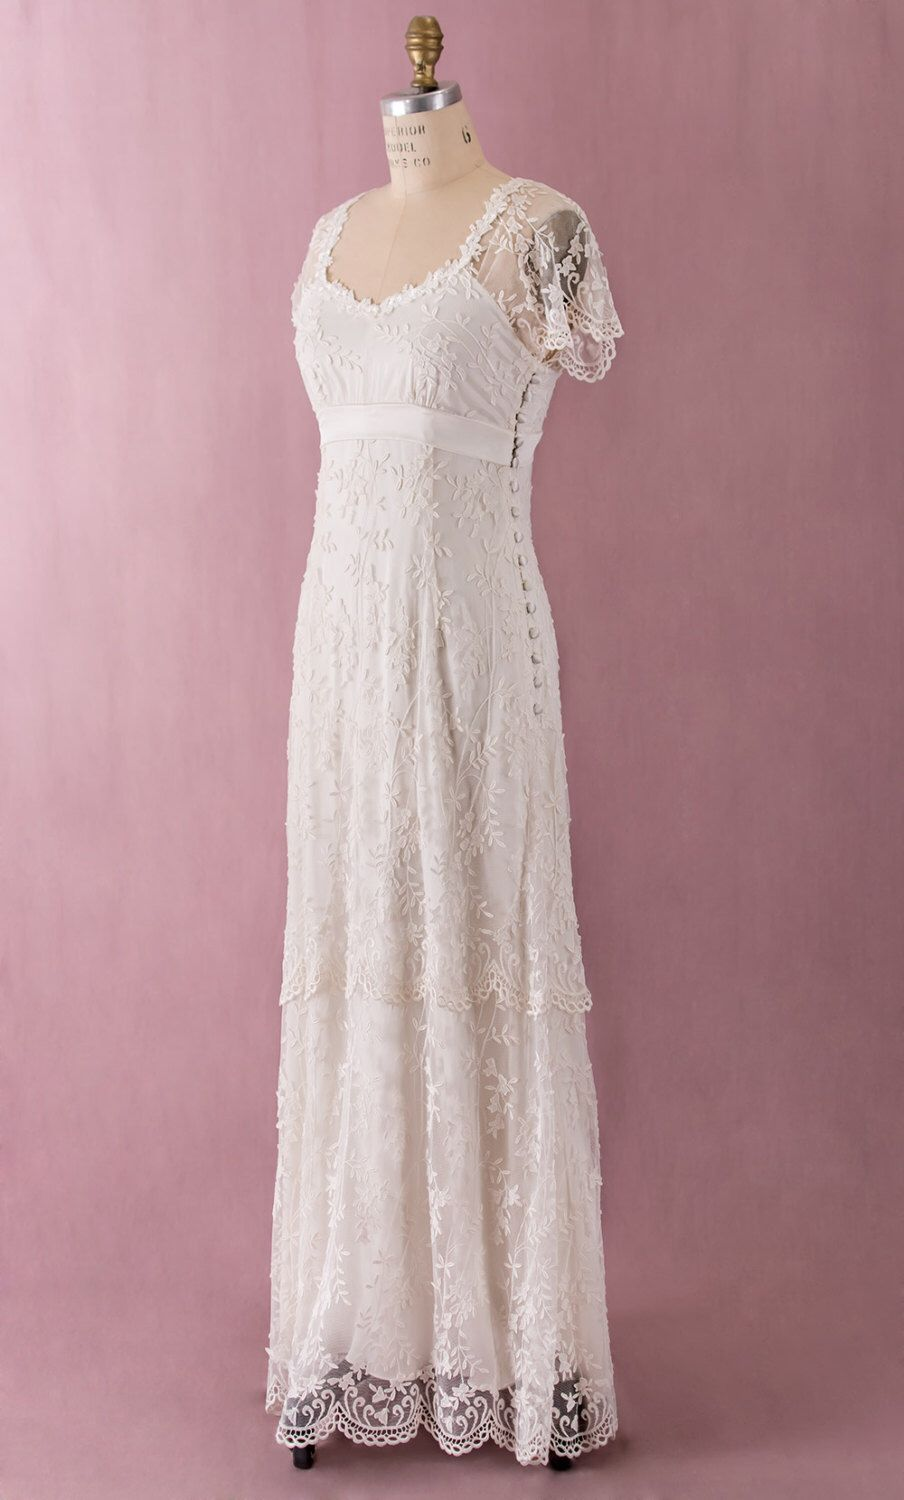 Vintage style lace wedding dress by MartinMcCreaCouture on Etsy https://www.etsy.com/listing/206280795/vintage-style-lace-wedding-dress